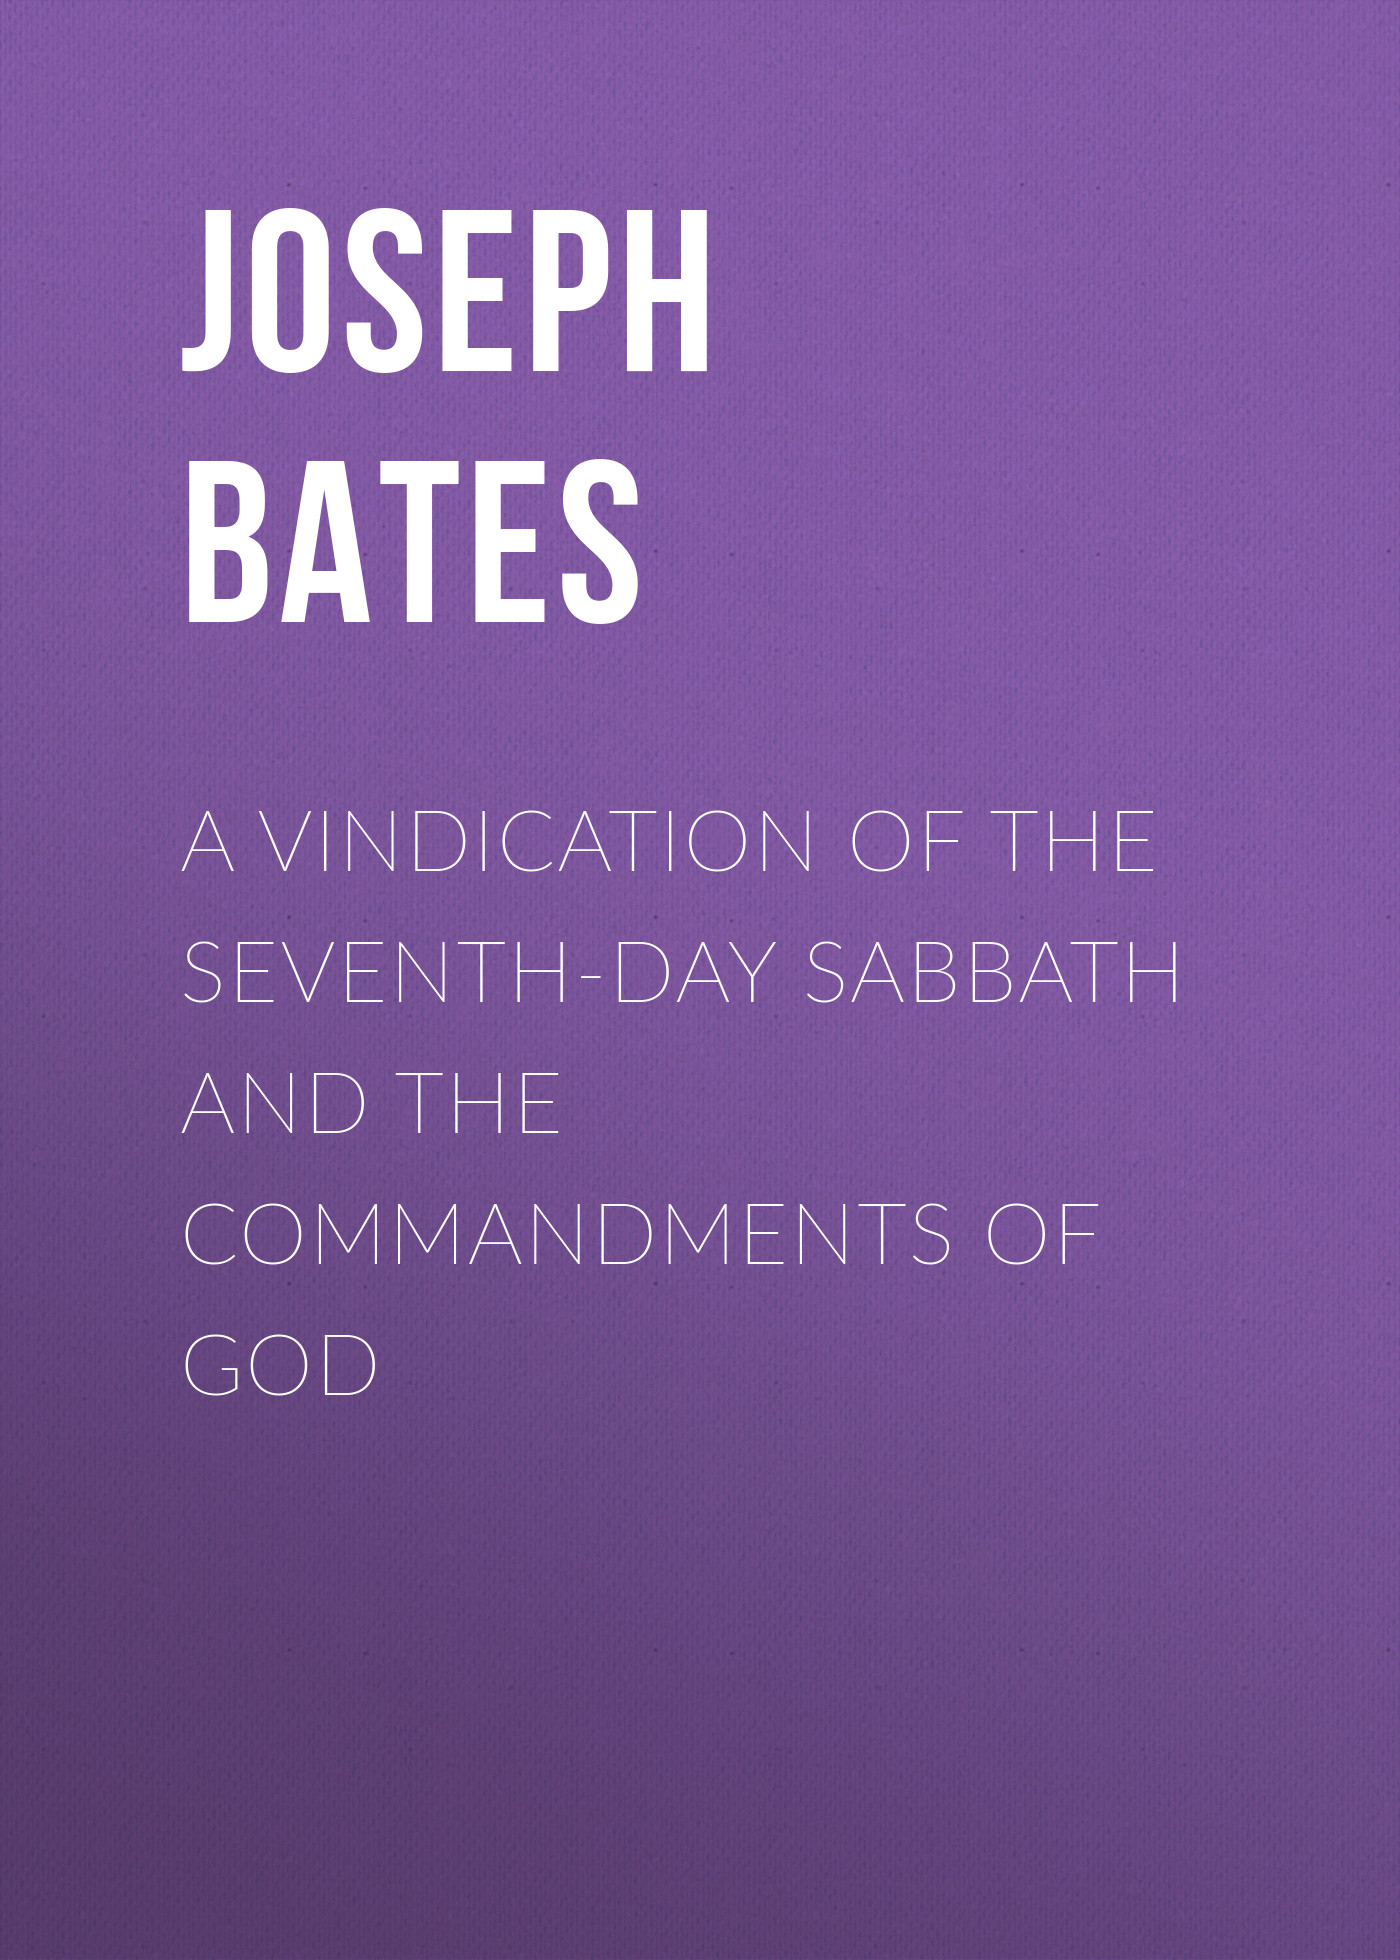 Joseph Bates A Vindication of the Seventh-Day Sabbath and the Commandments of God cd iron maiden seventh son of seventh son remastered